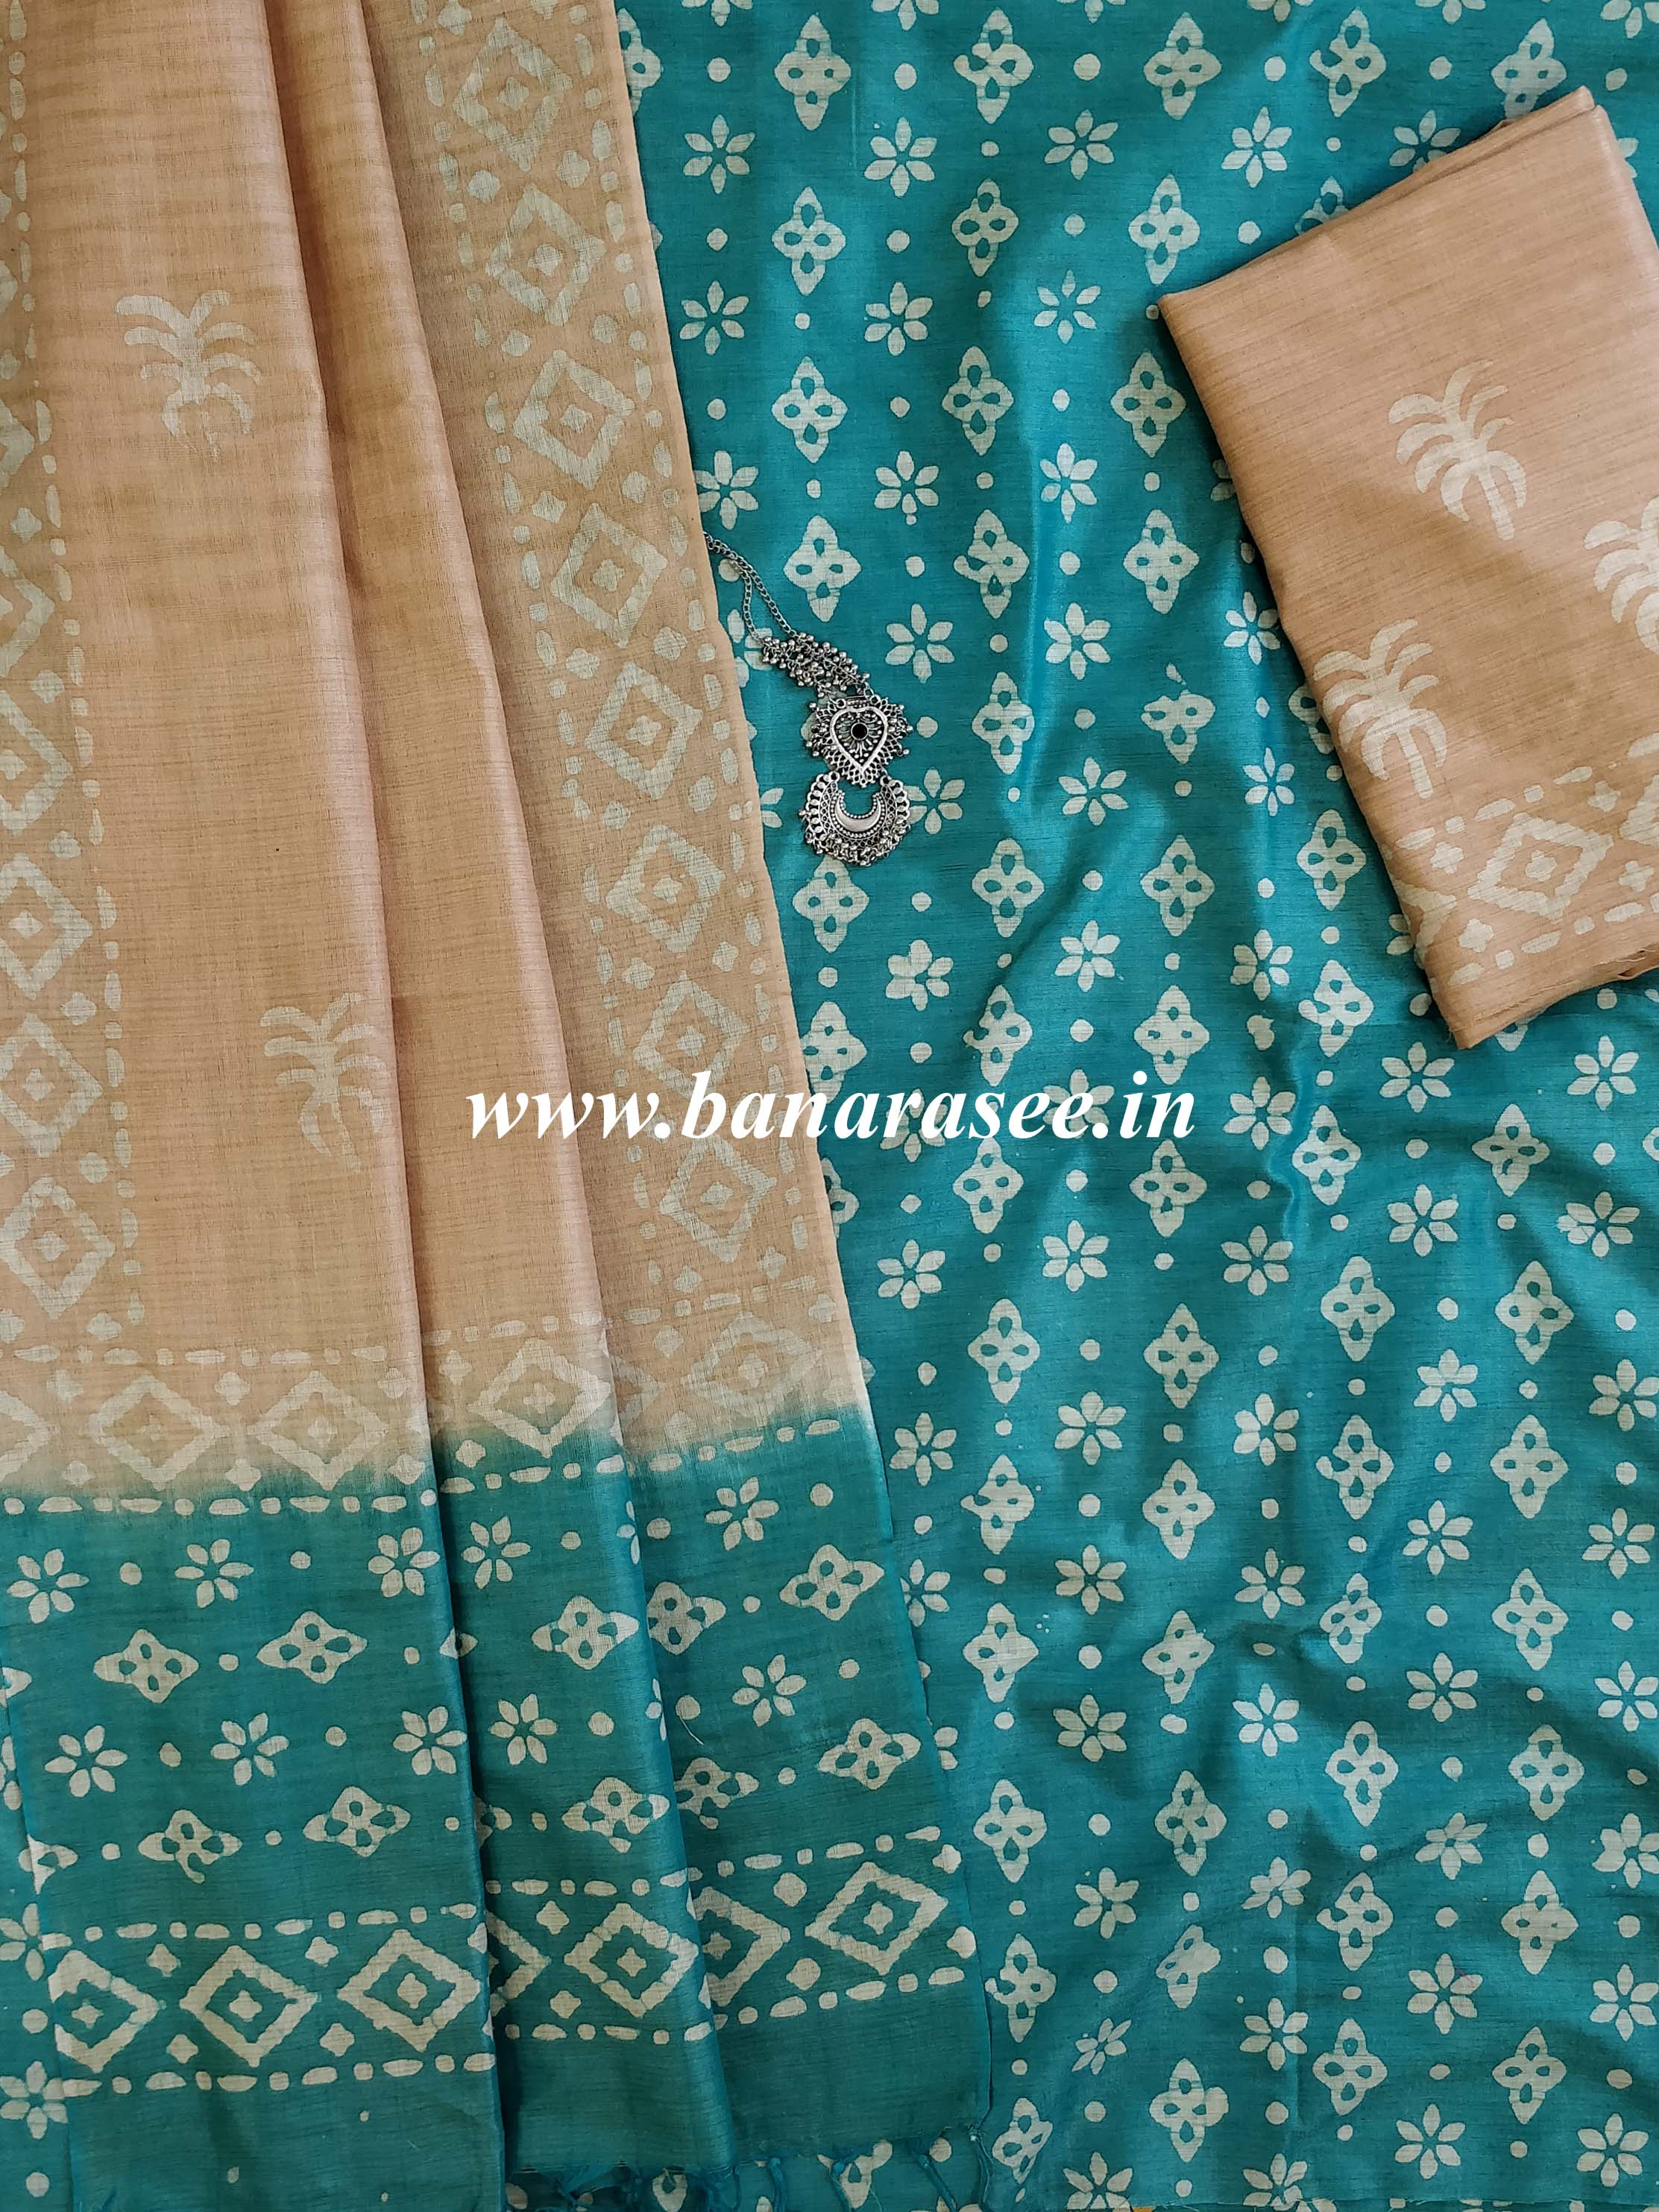 Pure Handloom Khadi Cotton Hand-Dyed Batik Pattern Salwar Kameez Dupatta Set-Green